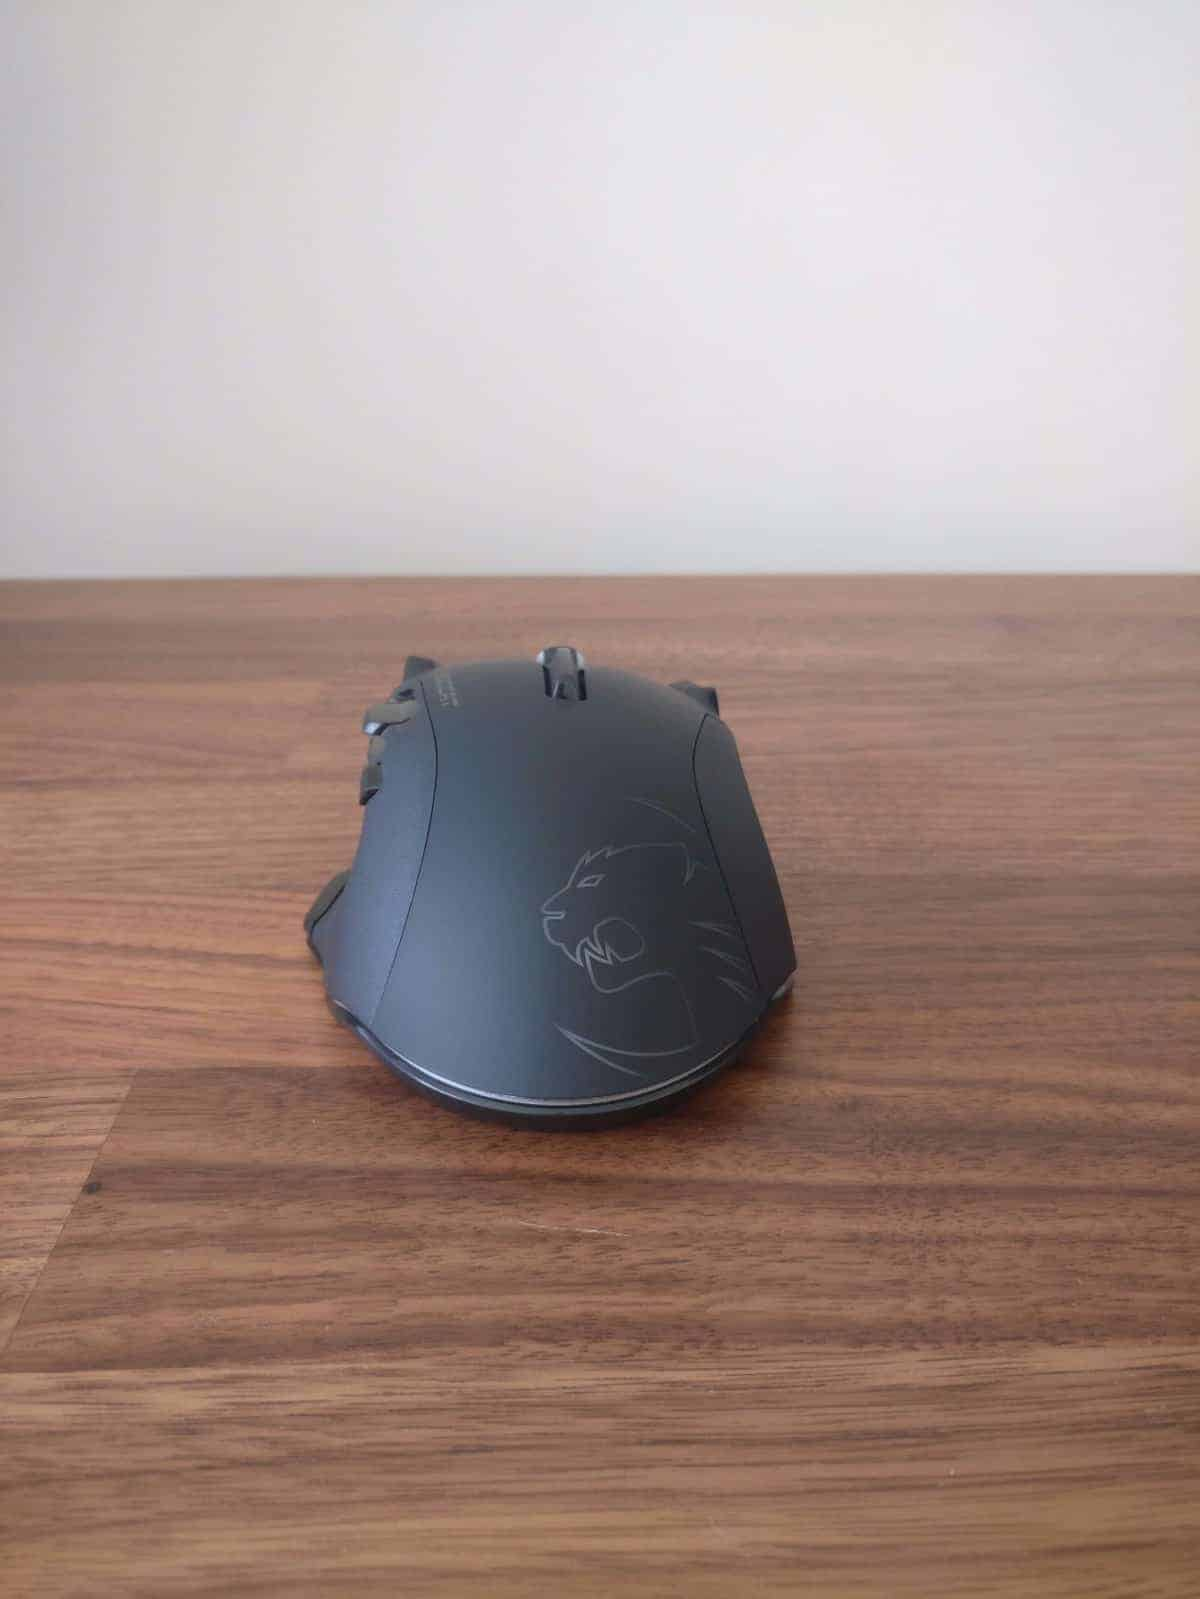 Roccat-Leadr-Photos13 Roccat Leadr Wireless Gaming Mouse Review